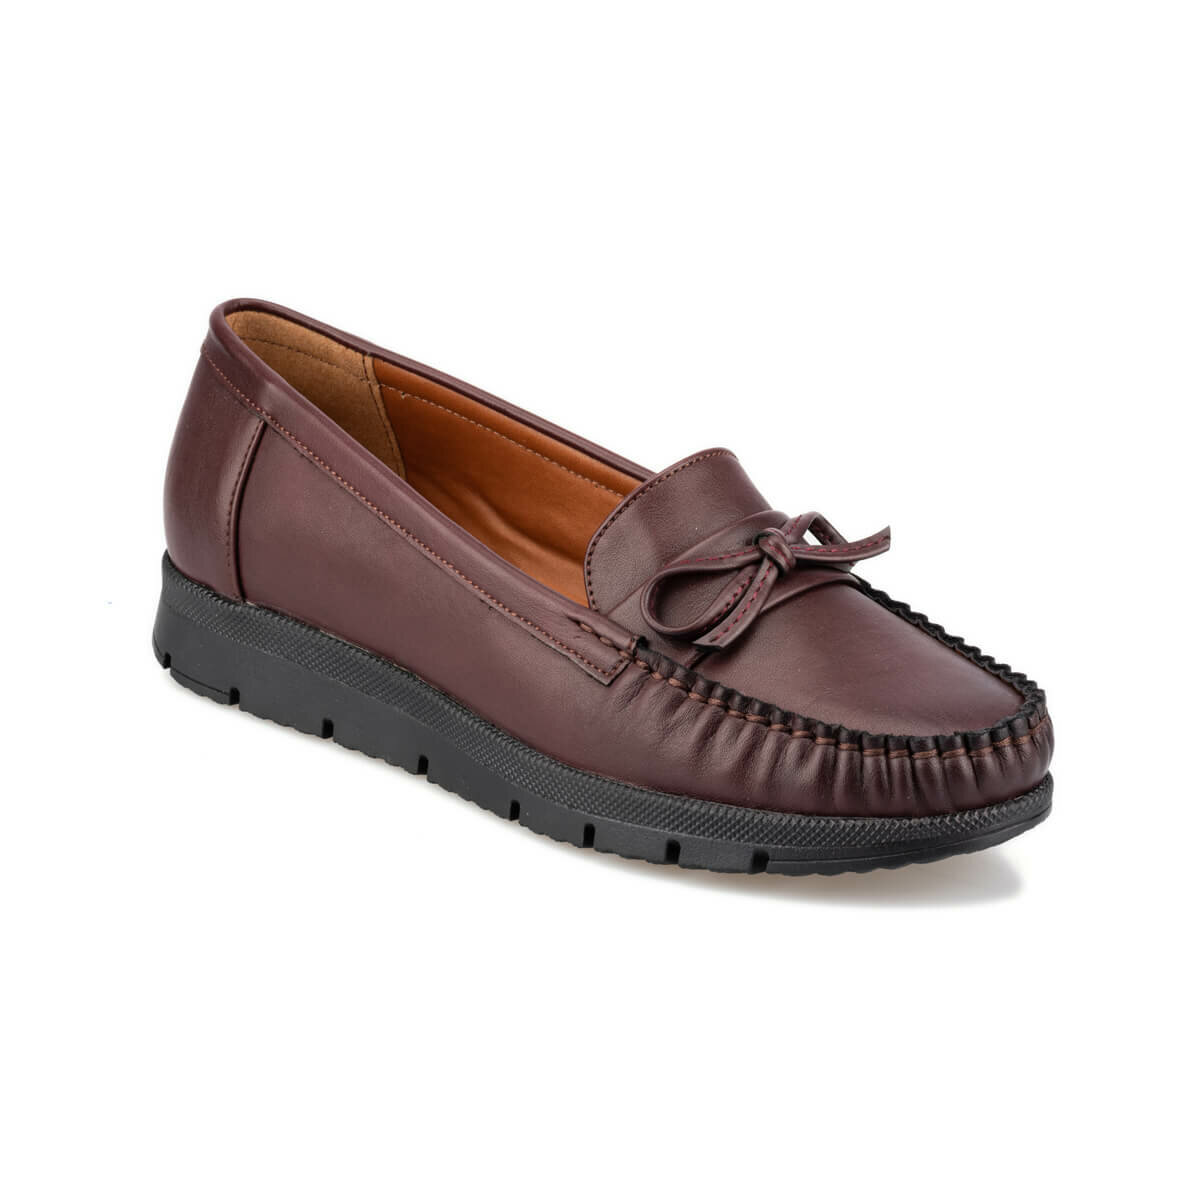 FLO 92.151012CZ Burgundy Women Loafer Shoes Polaris